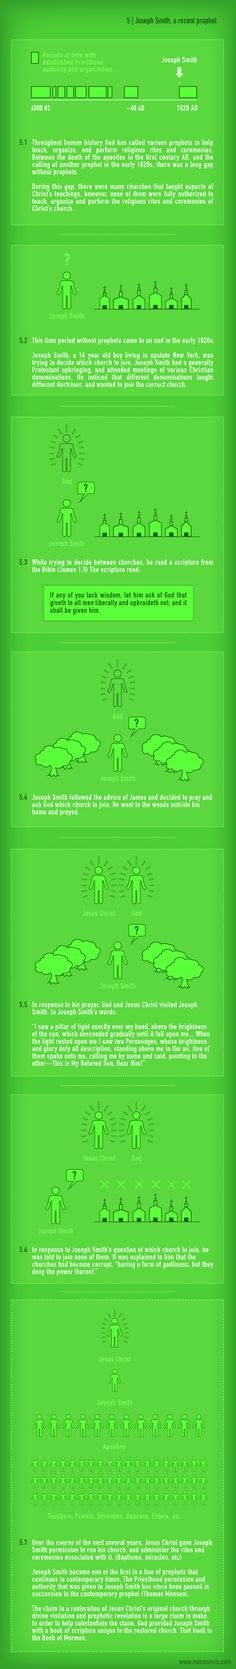 MormonismVisualized_5_Joseph_Smith_infographic.  May lesson  Prophets and Revelation